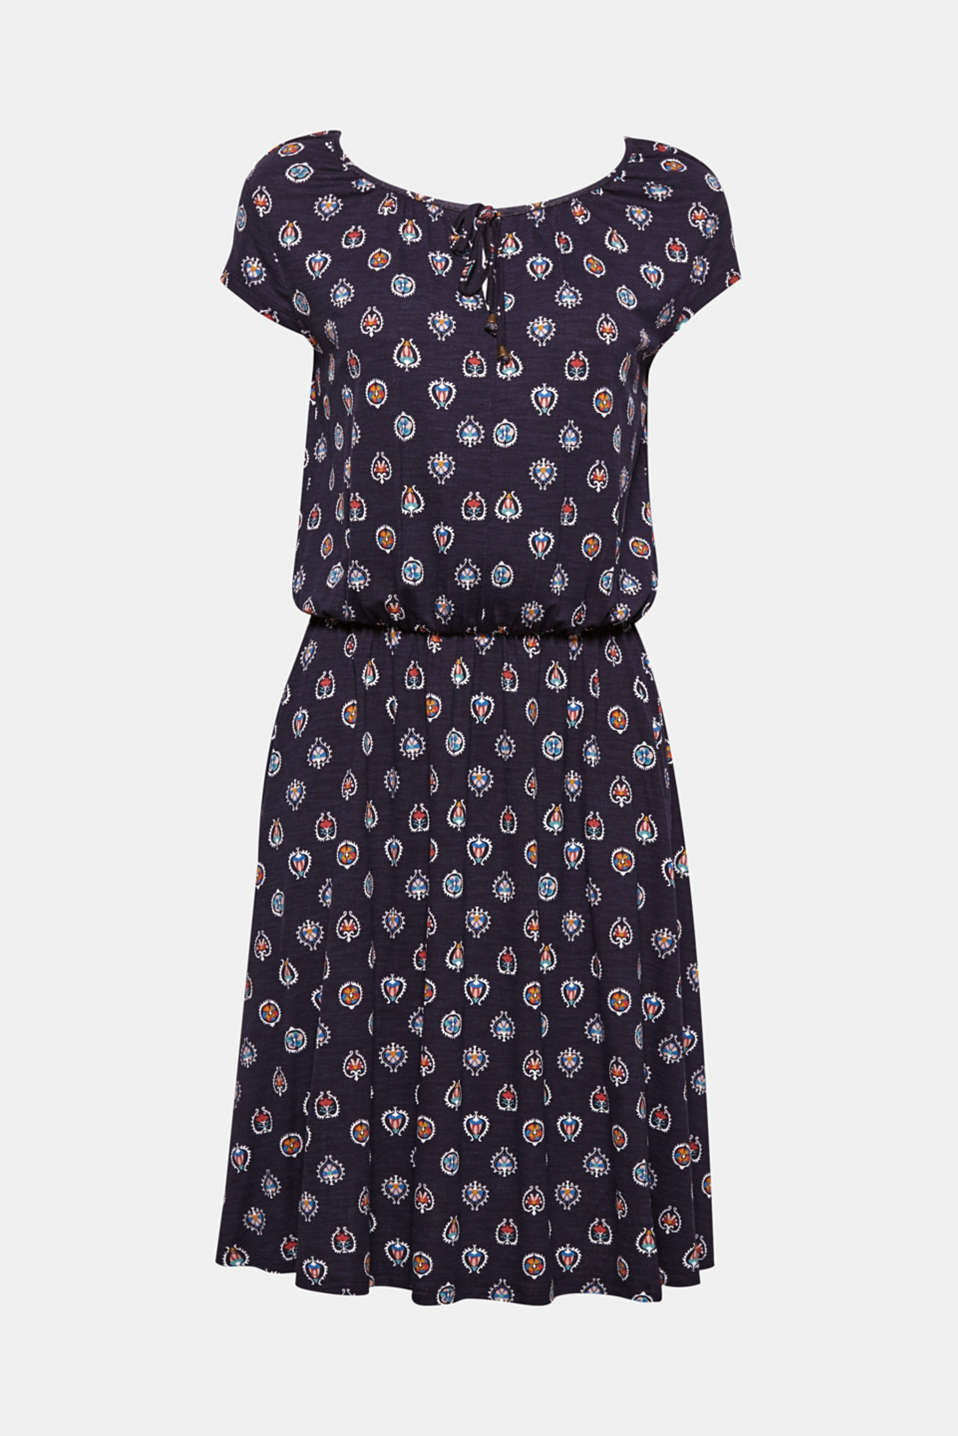 This soft, flowing dress with an elasticated seam and tie detail combines comfort with relaxed design.